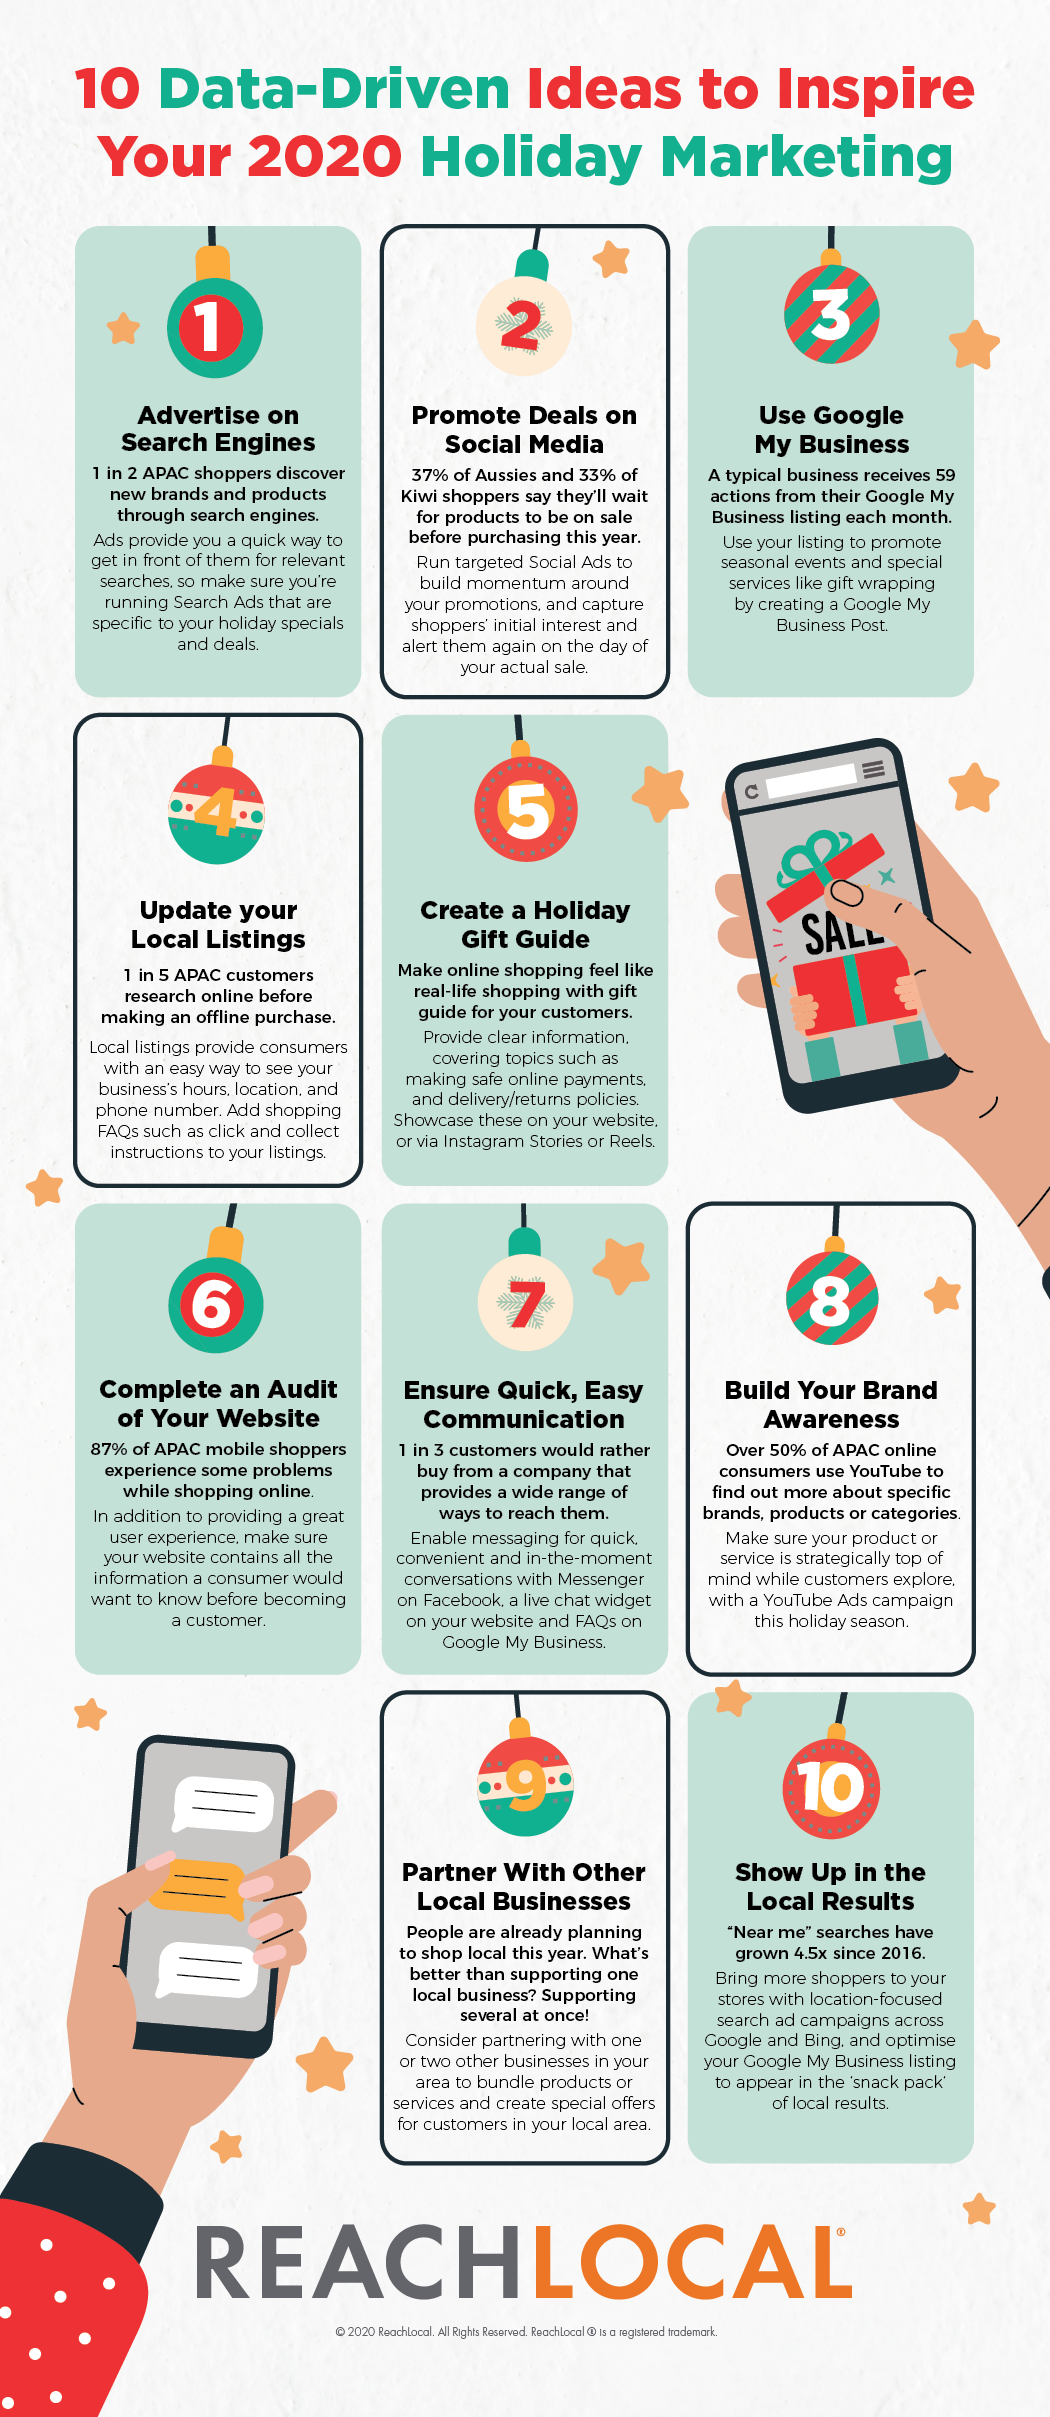 10 Data-Driven Ideas to Inspire Your 2020 Holiday Marketing